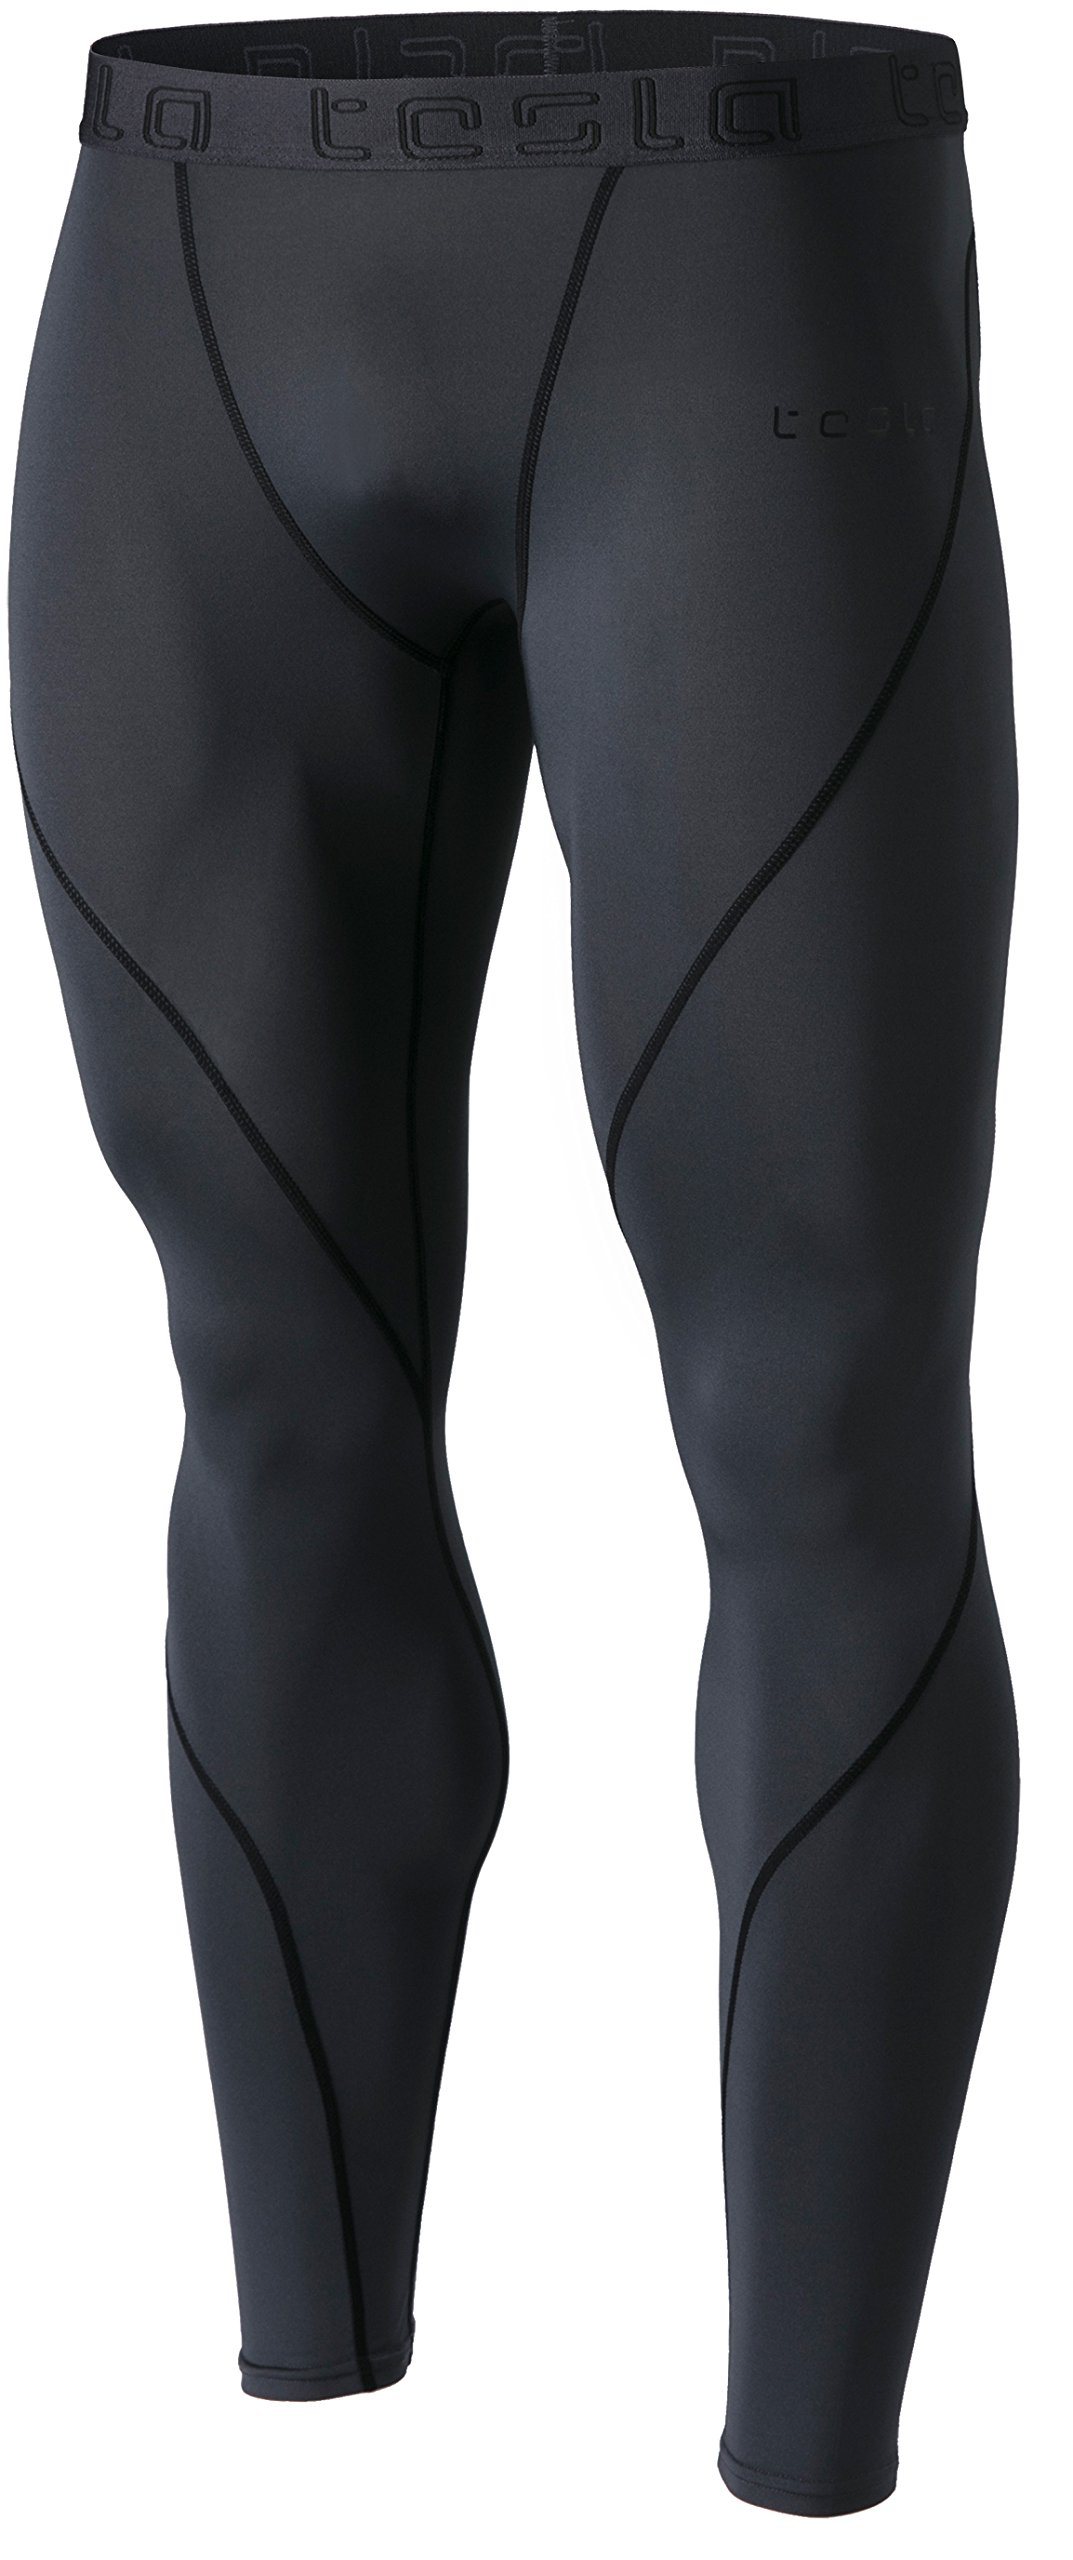 TSLA Men's Compression Pants Running Baselayer Cool Dry Sports Tights, Athletic(mup19) - Charcoal, Large by TSLA